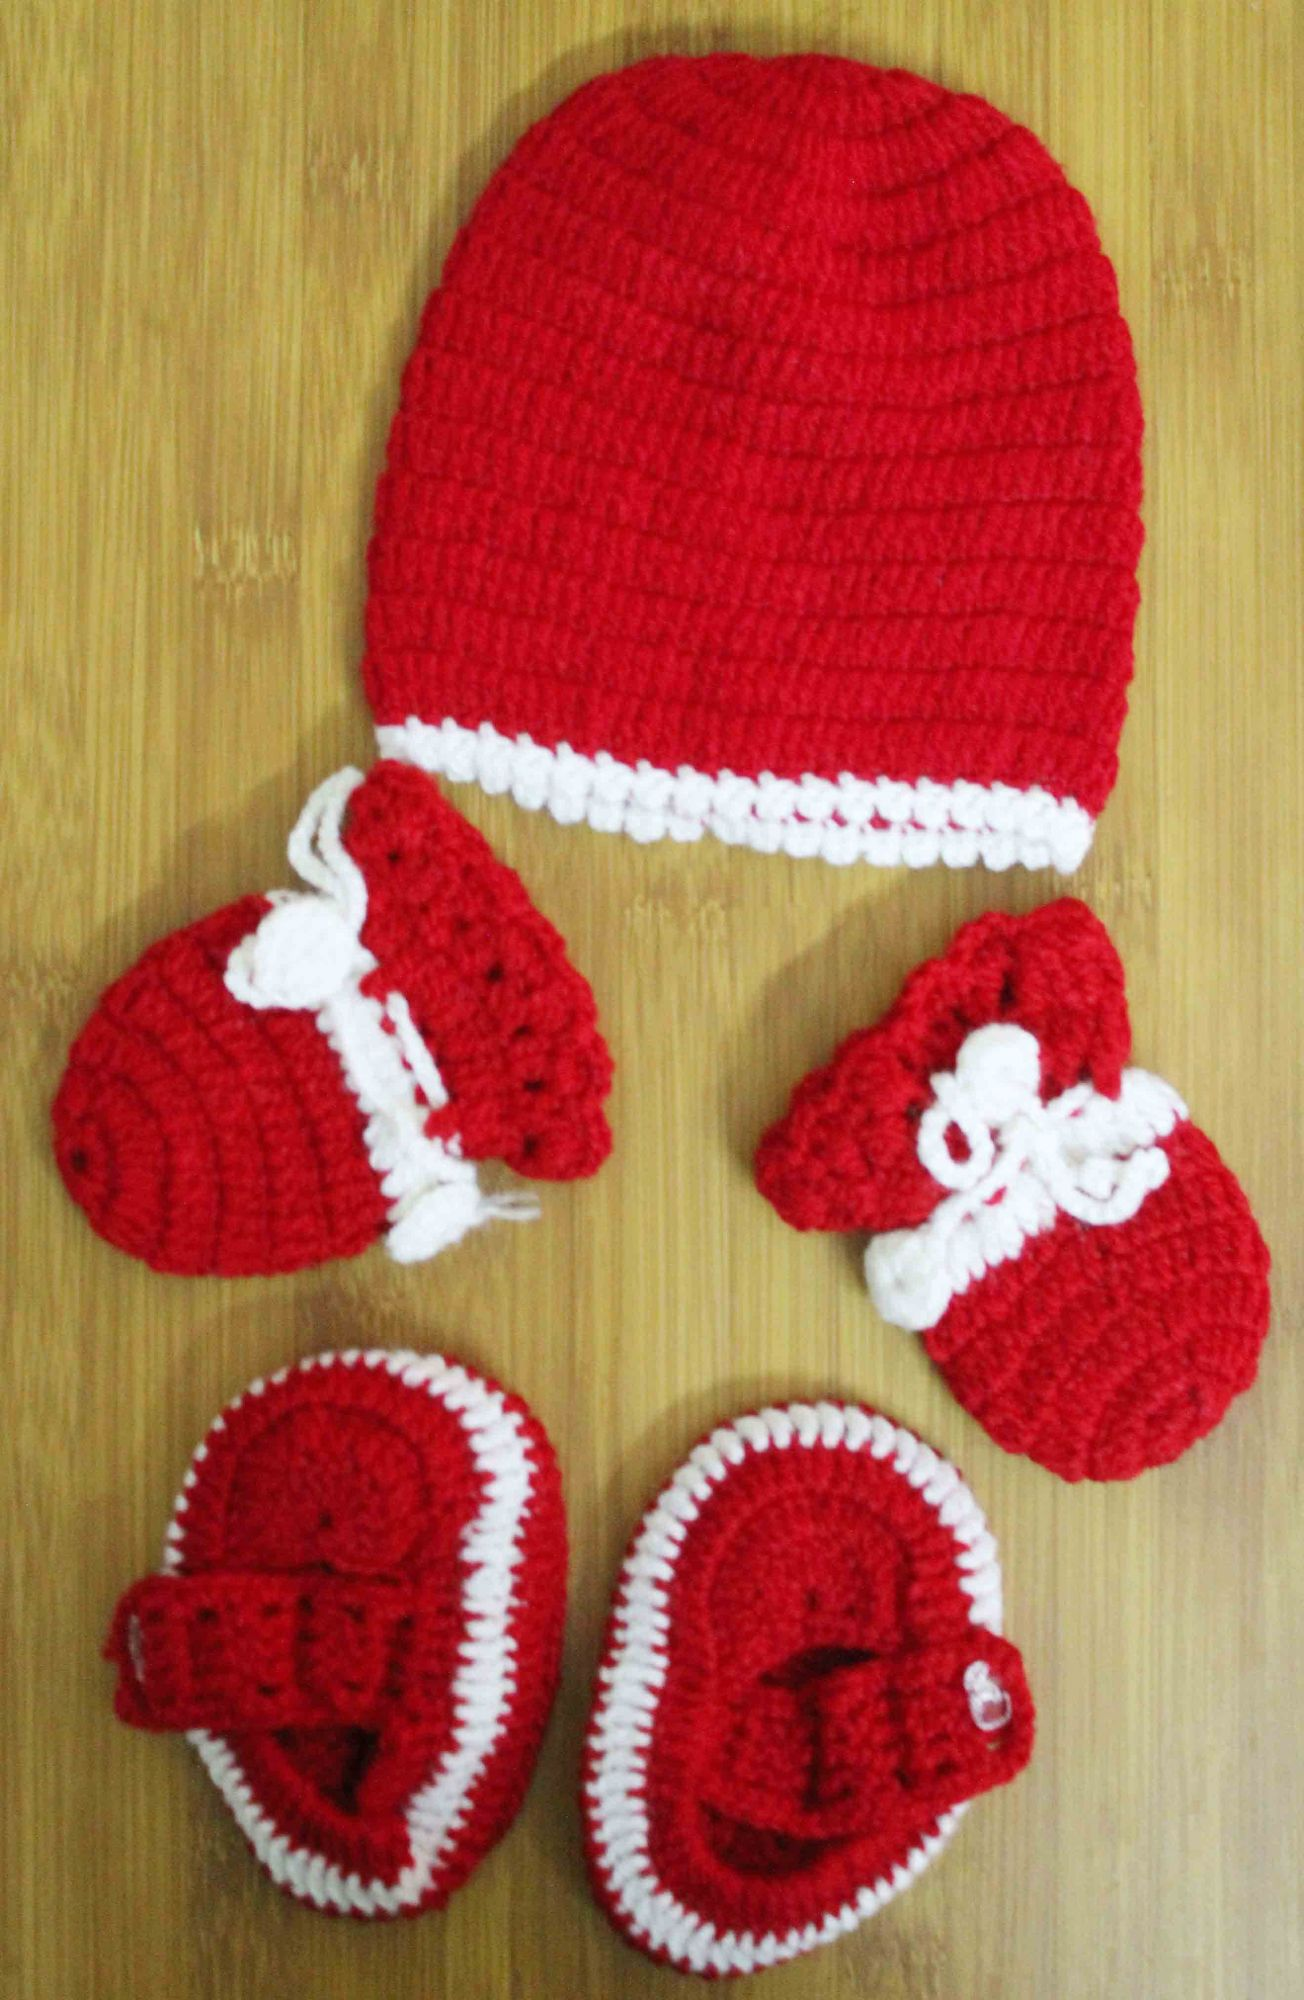 Red and White Woolen Cap with Matching Mittens and Booties